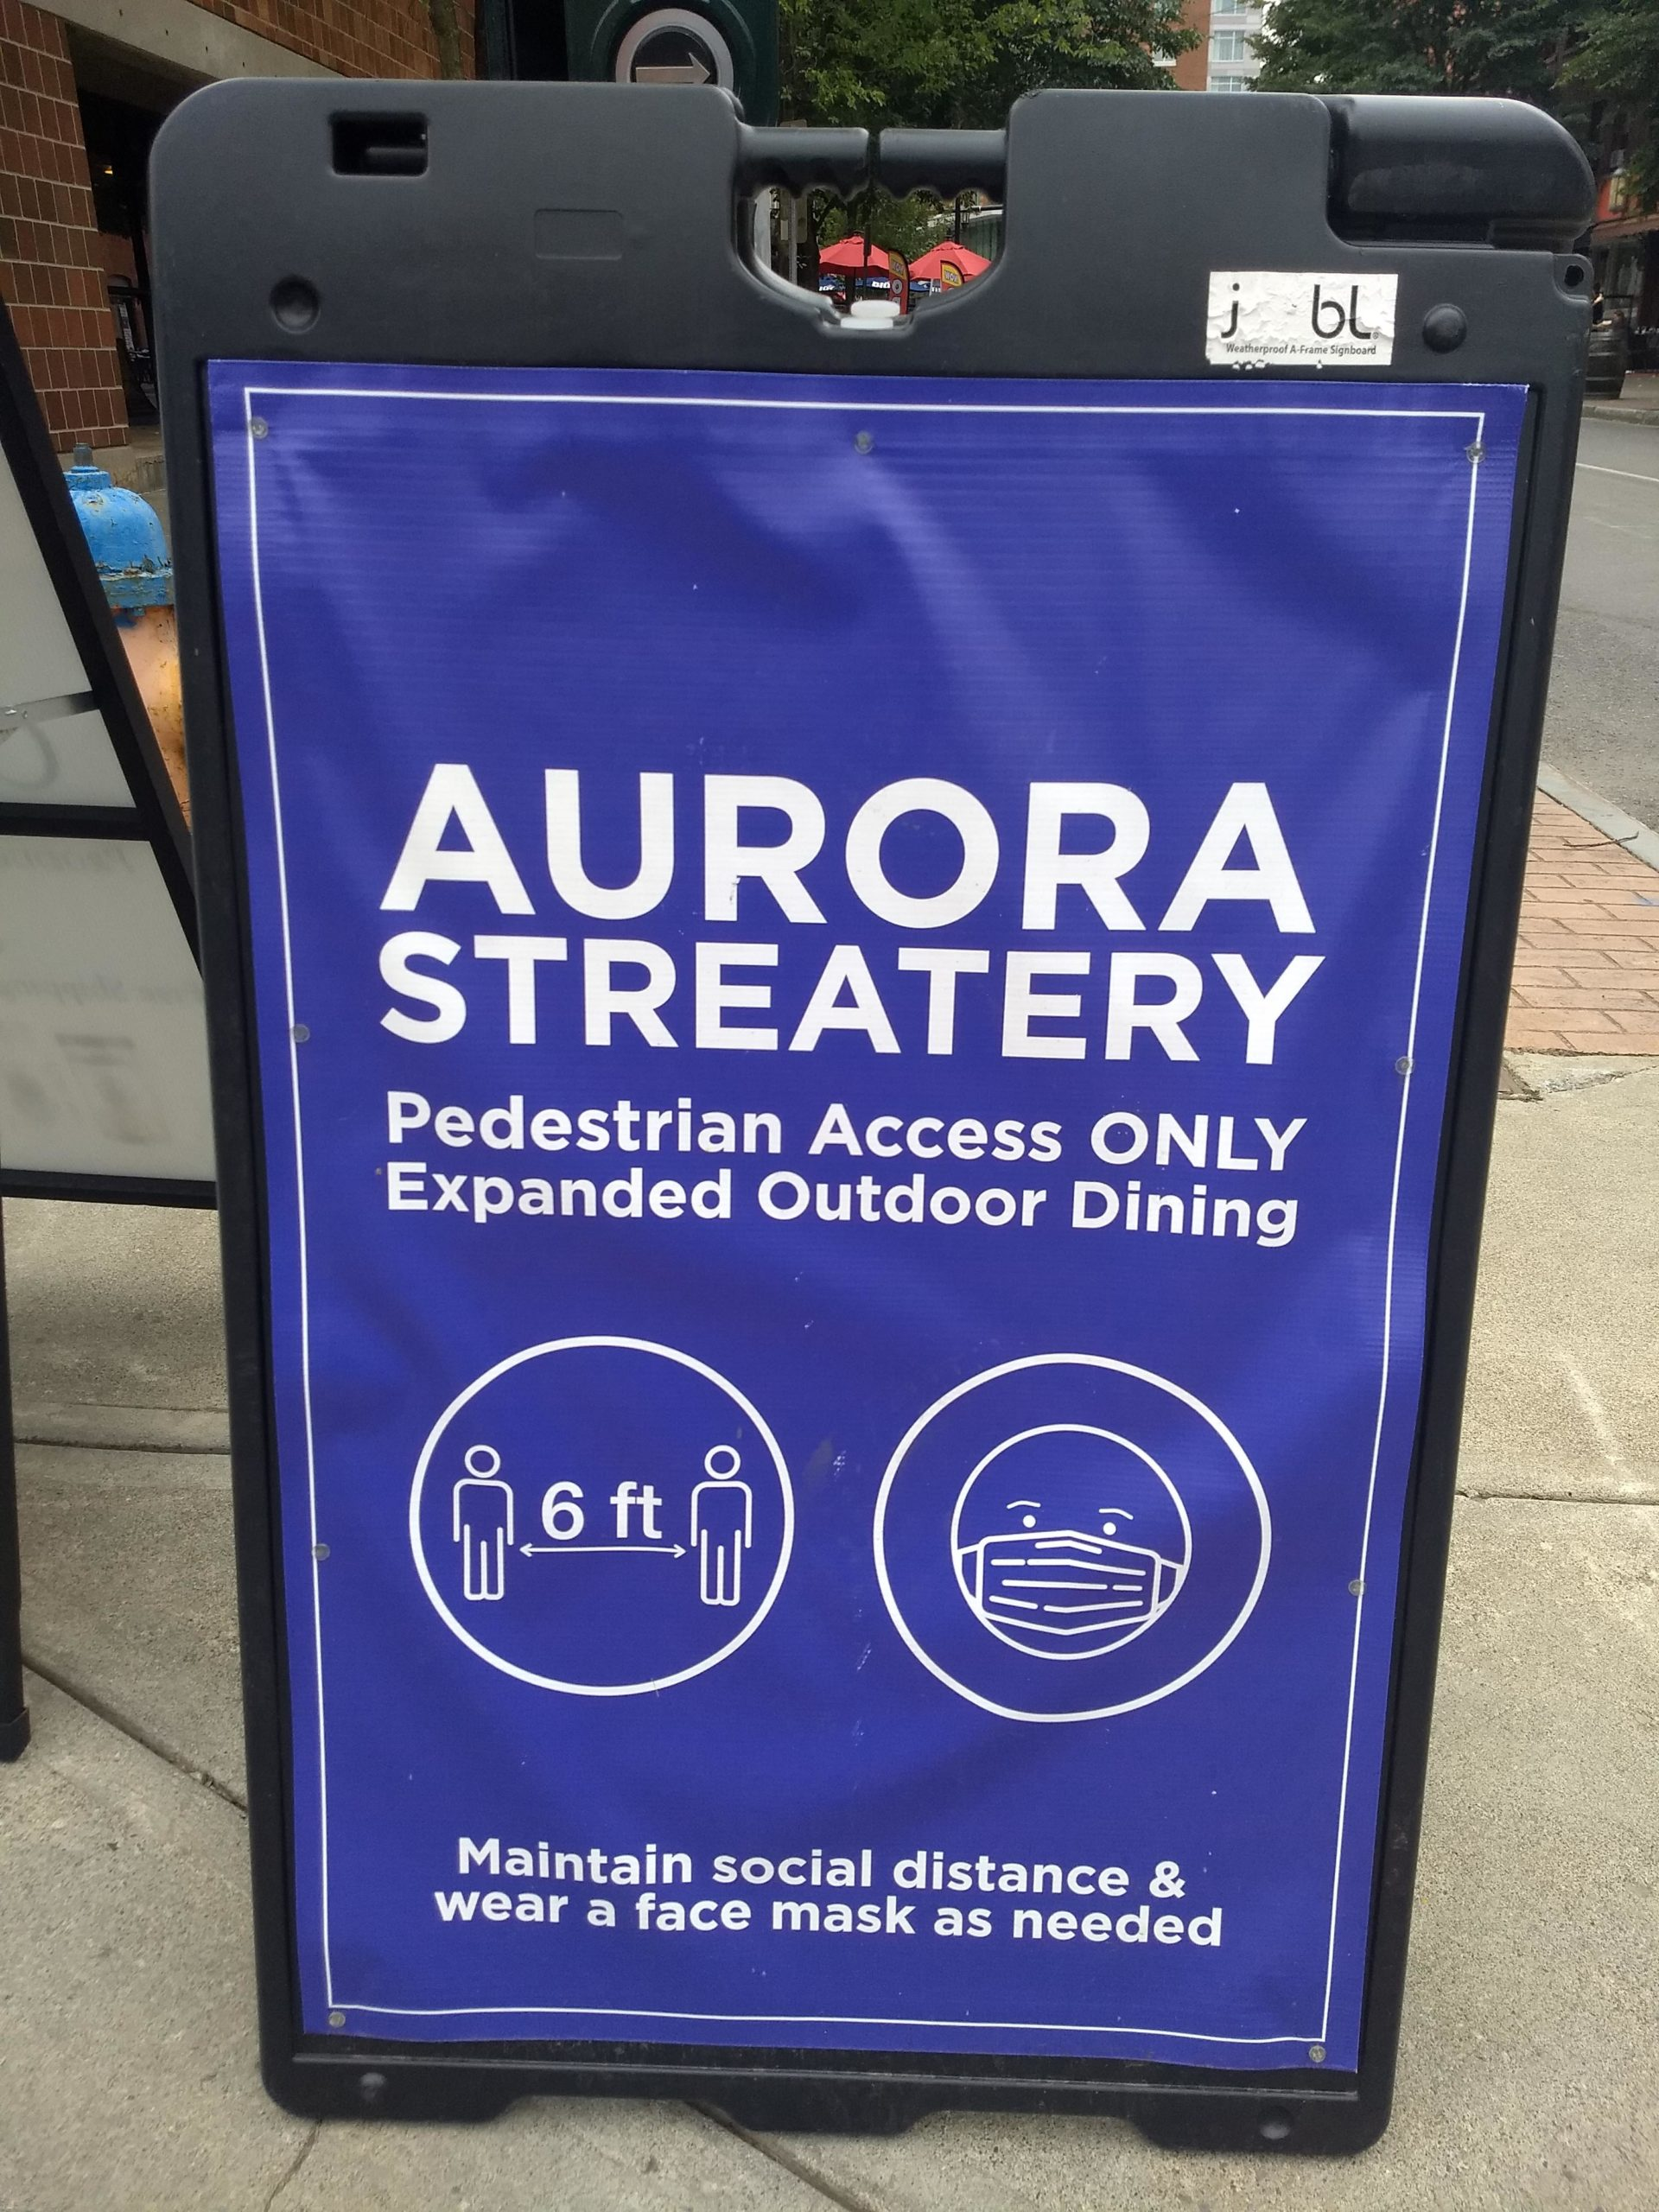 Sign for Aurora Streatery